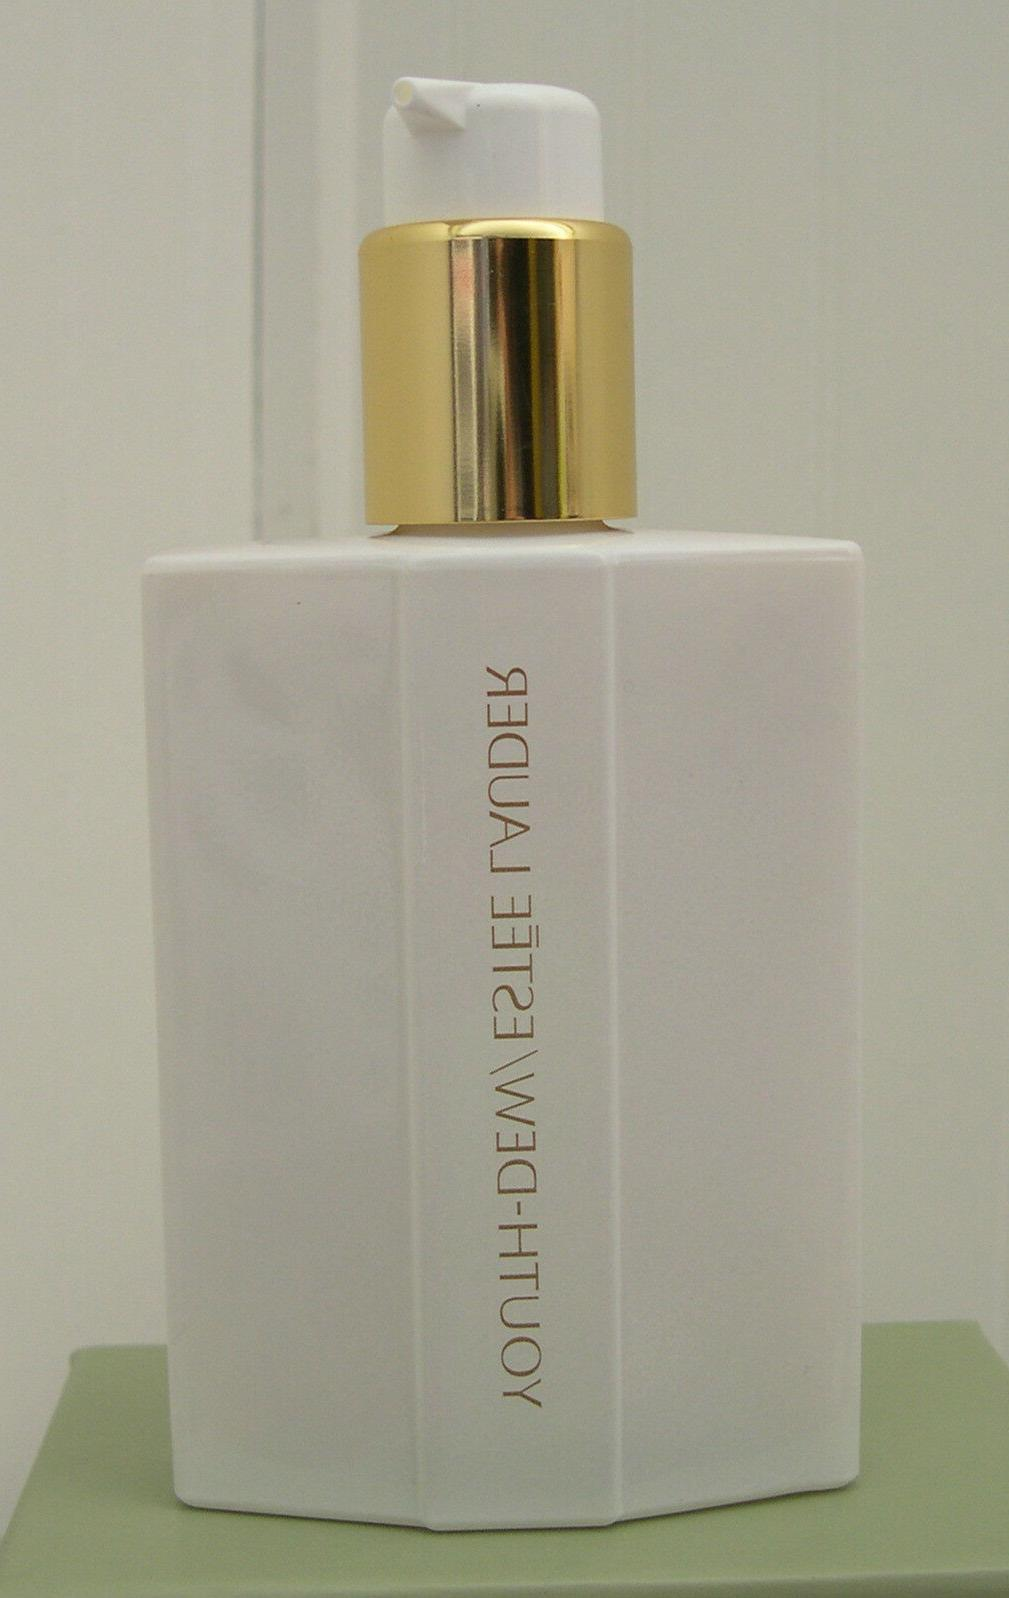 New Estee Lauder Youth Dew Body Satinee 3.12 oz Body Lotion